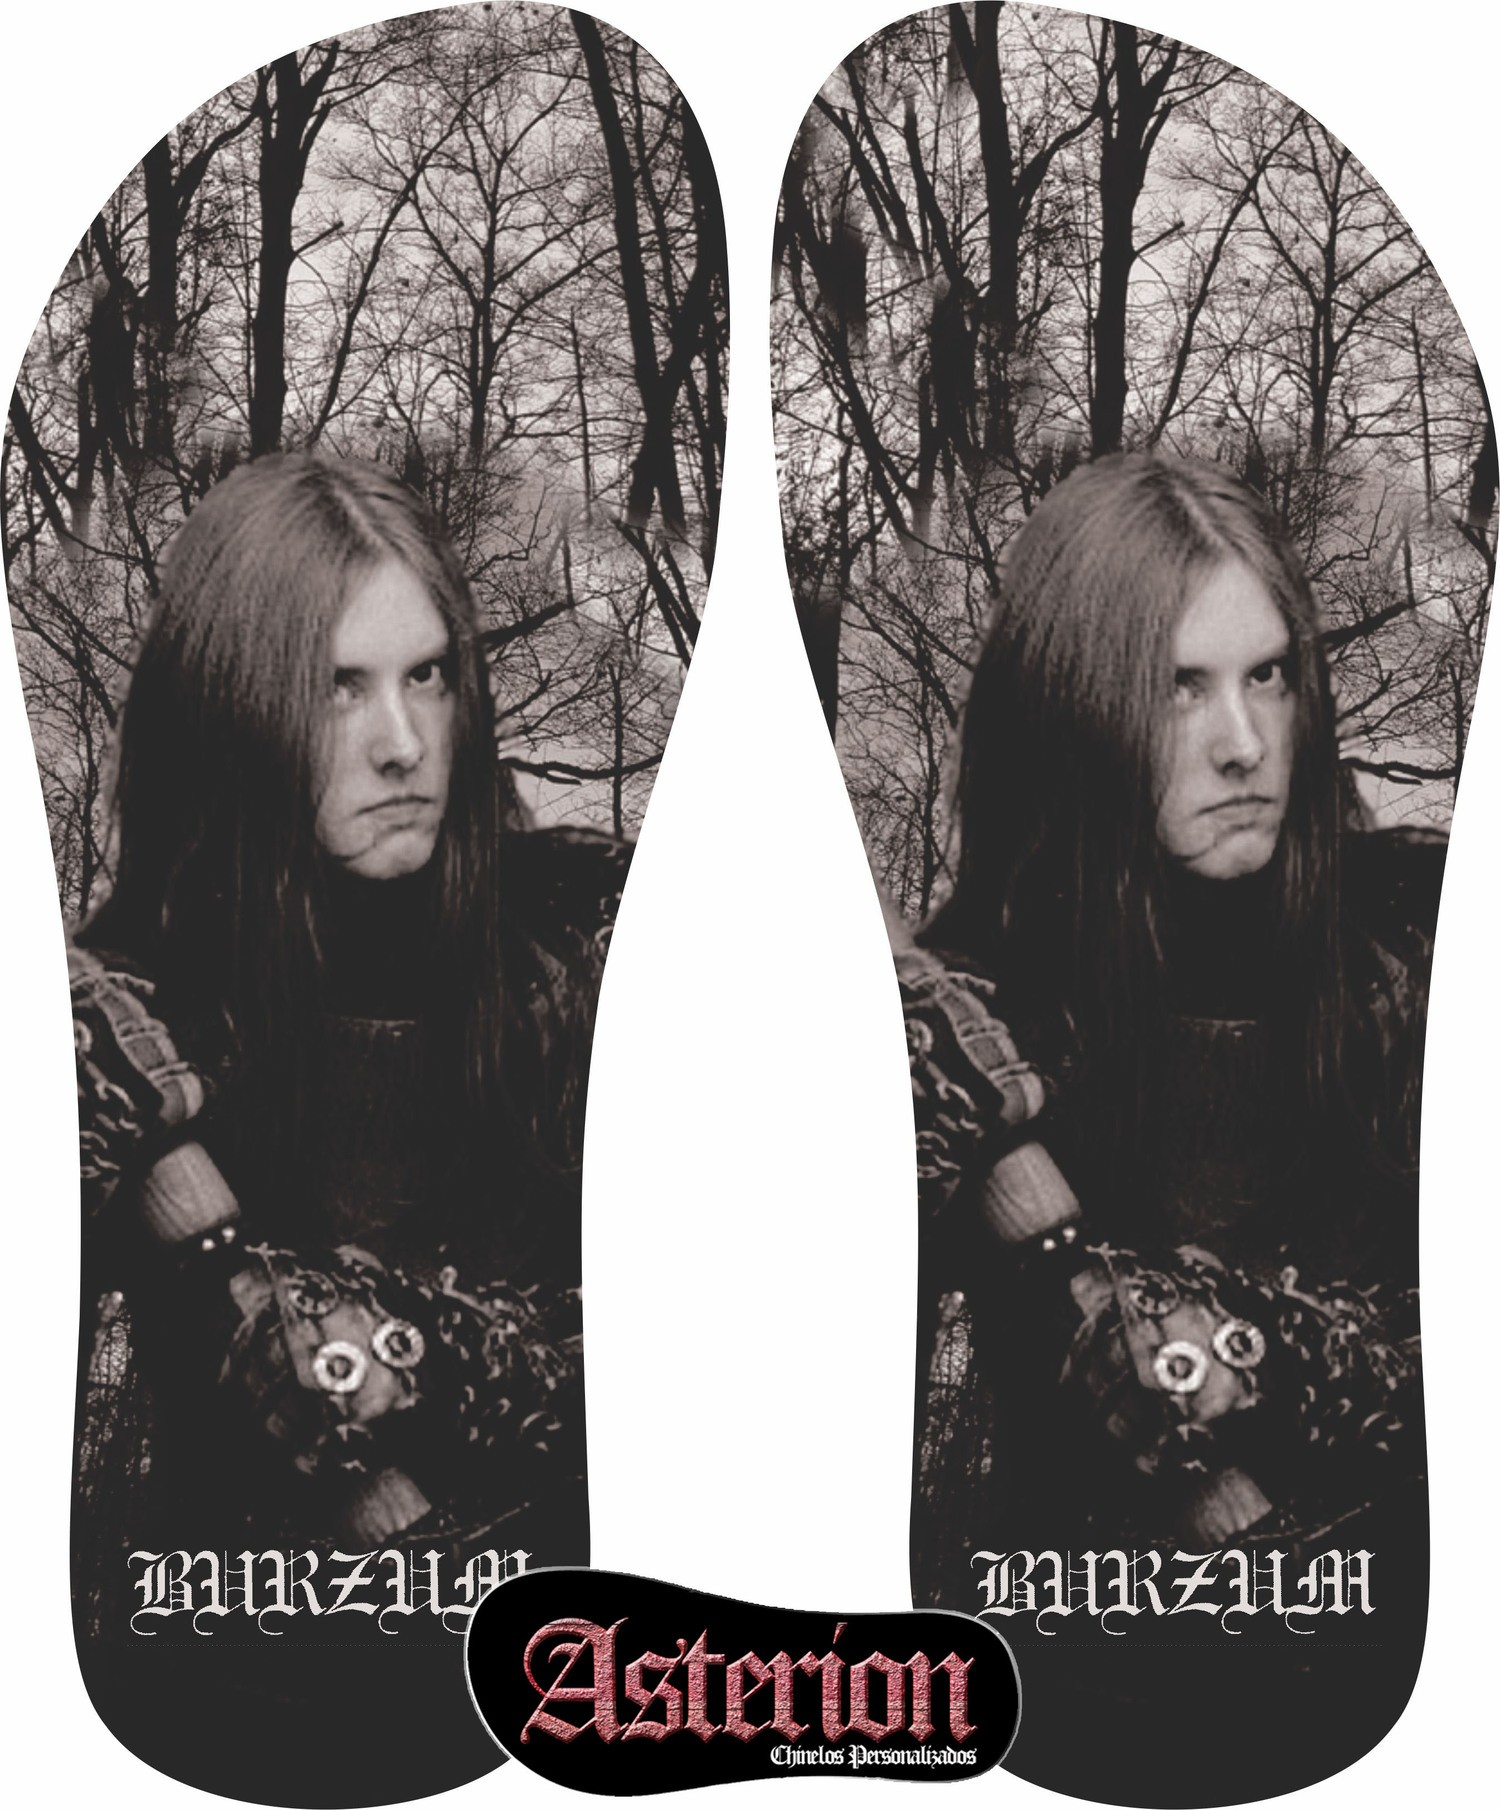 Chinelo Burzum  – Asterion Chinelos Personalizados